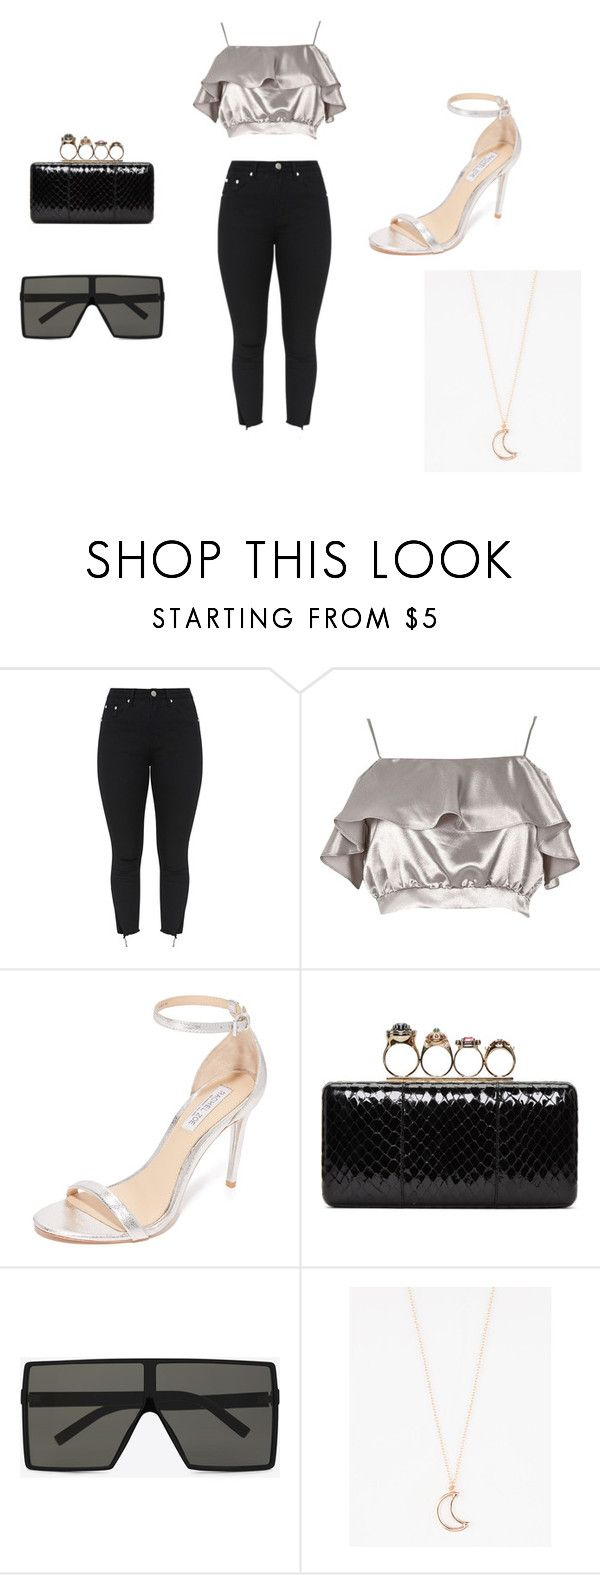 """""""Dress Down"""" by skyelynnalexis ❤ liked on Polyvore featuring River Island, Rachel Zoe, Alexander McQueen, Yves Saint Laurent and Full Tilt"""